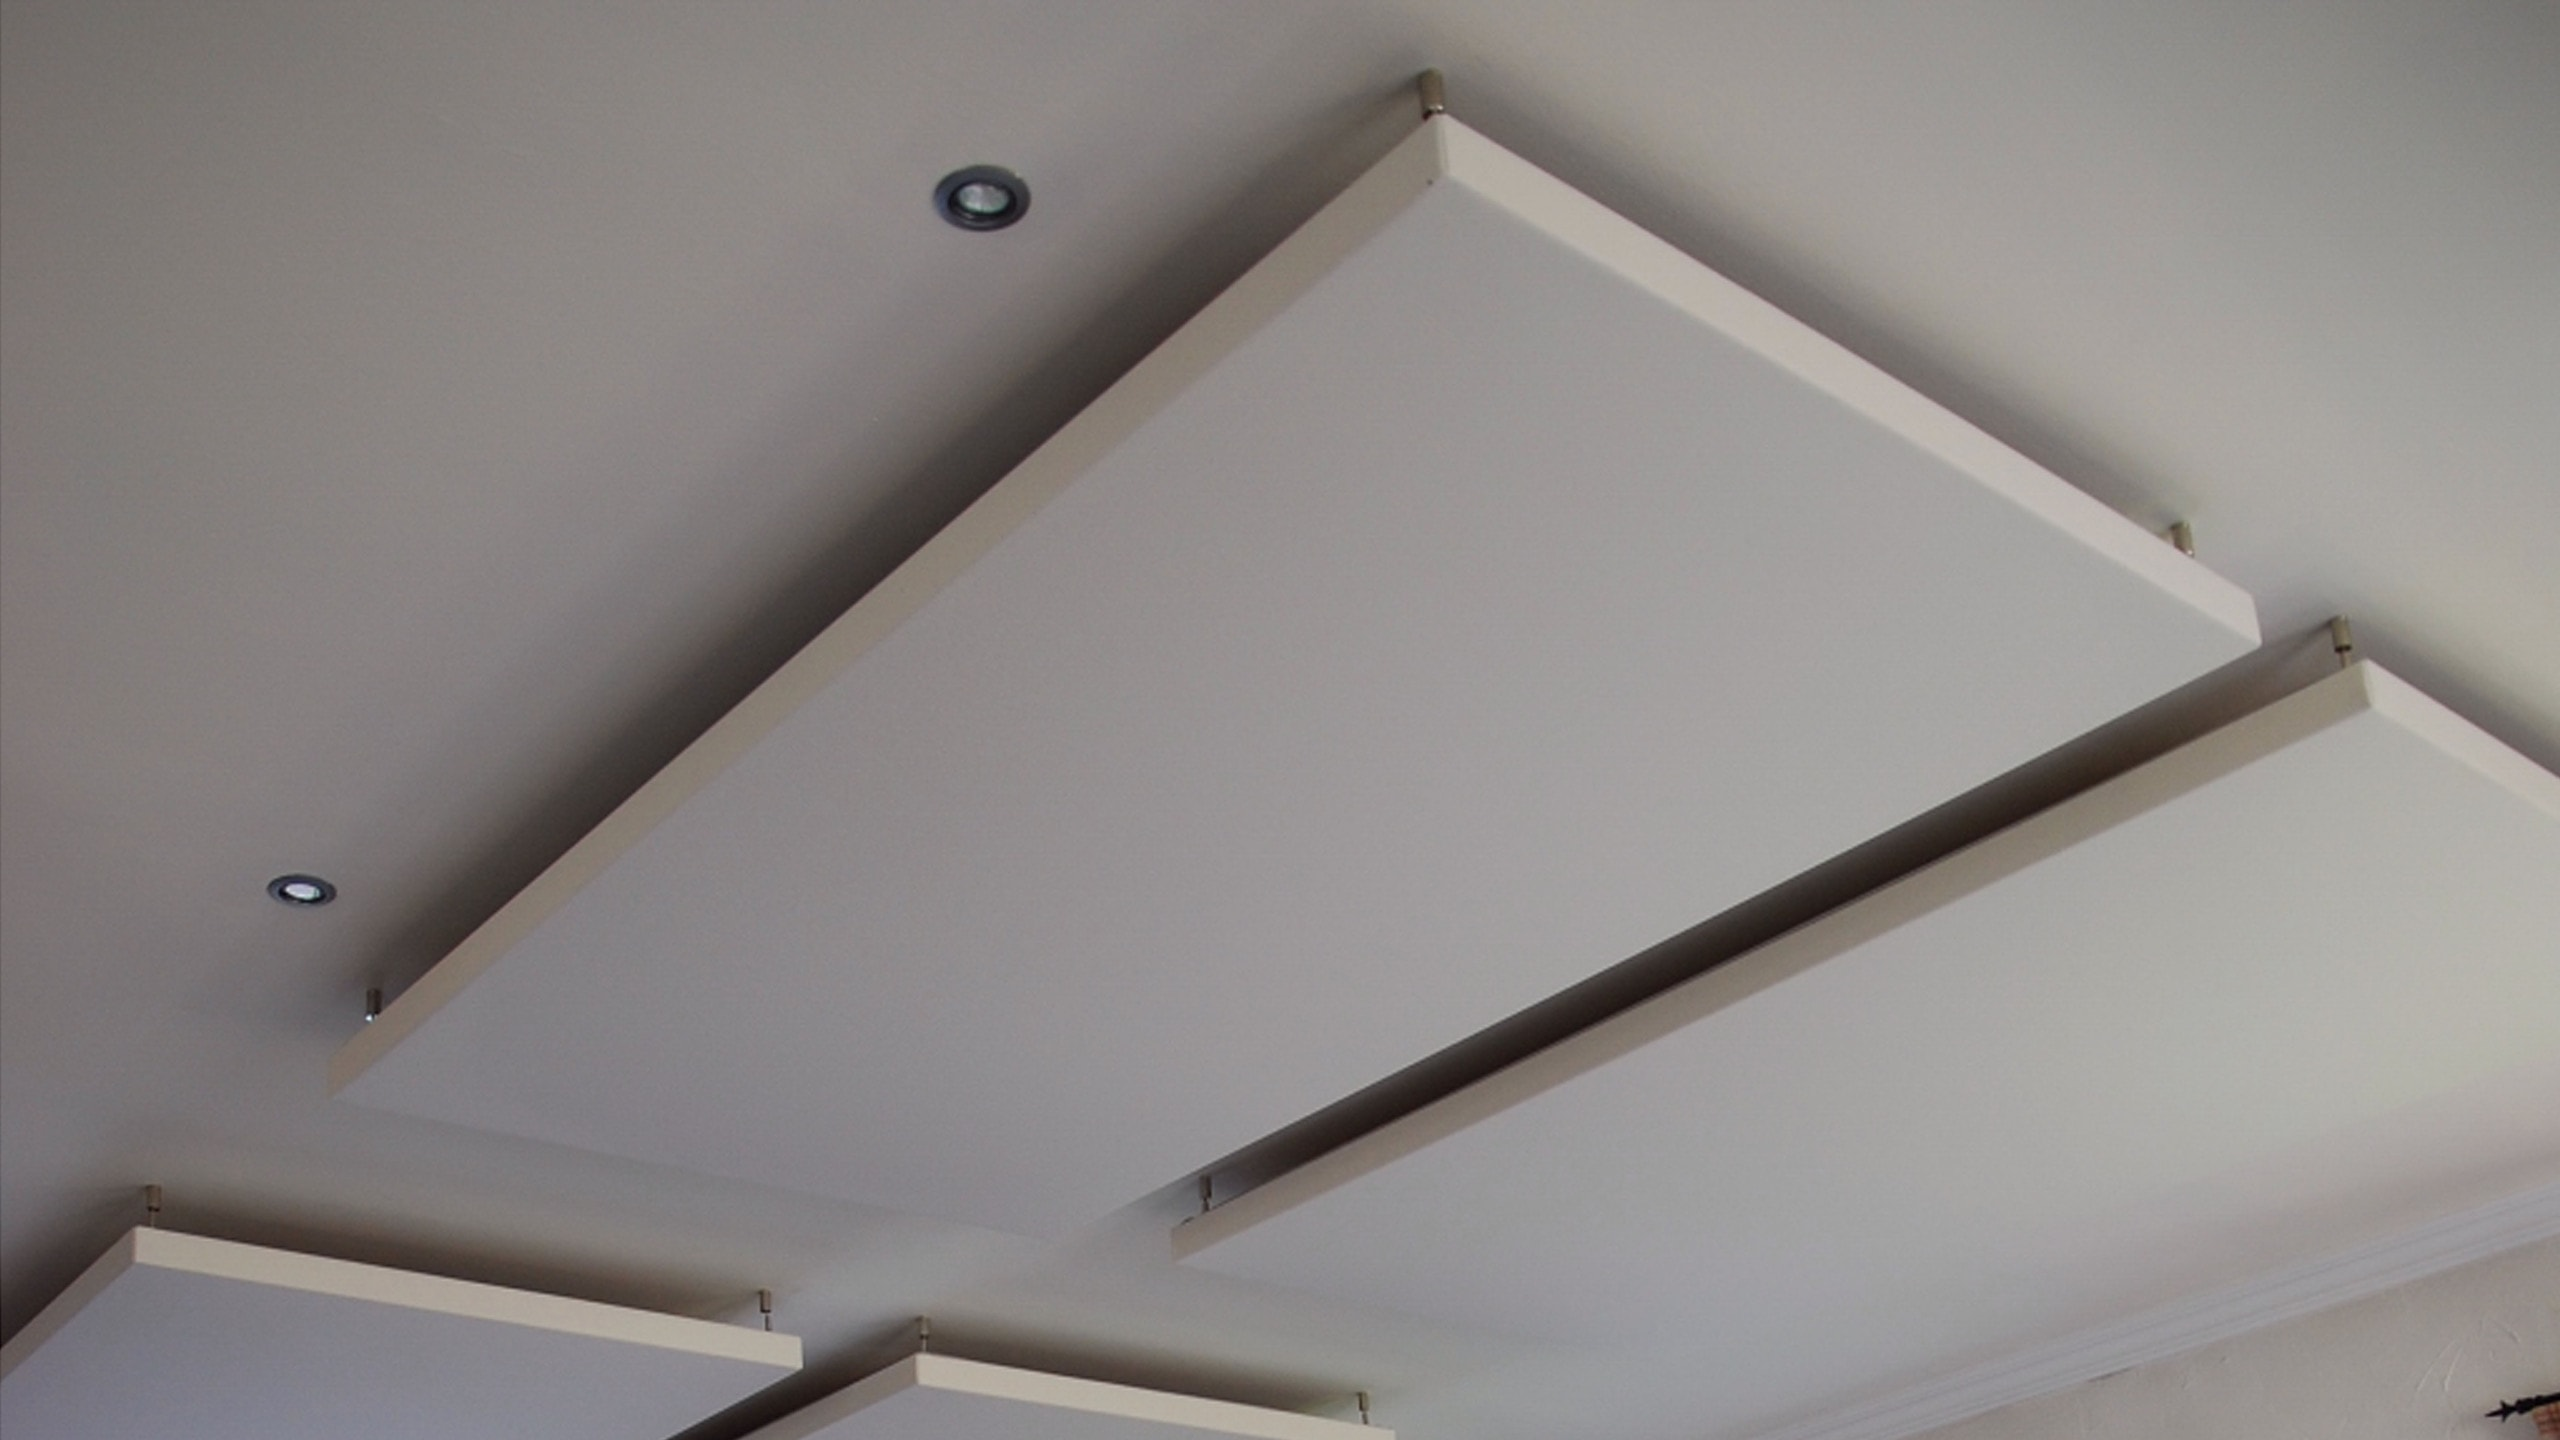 A500 on ceiling